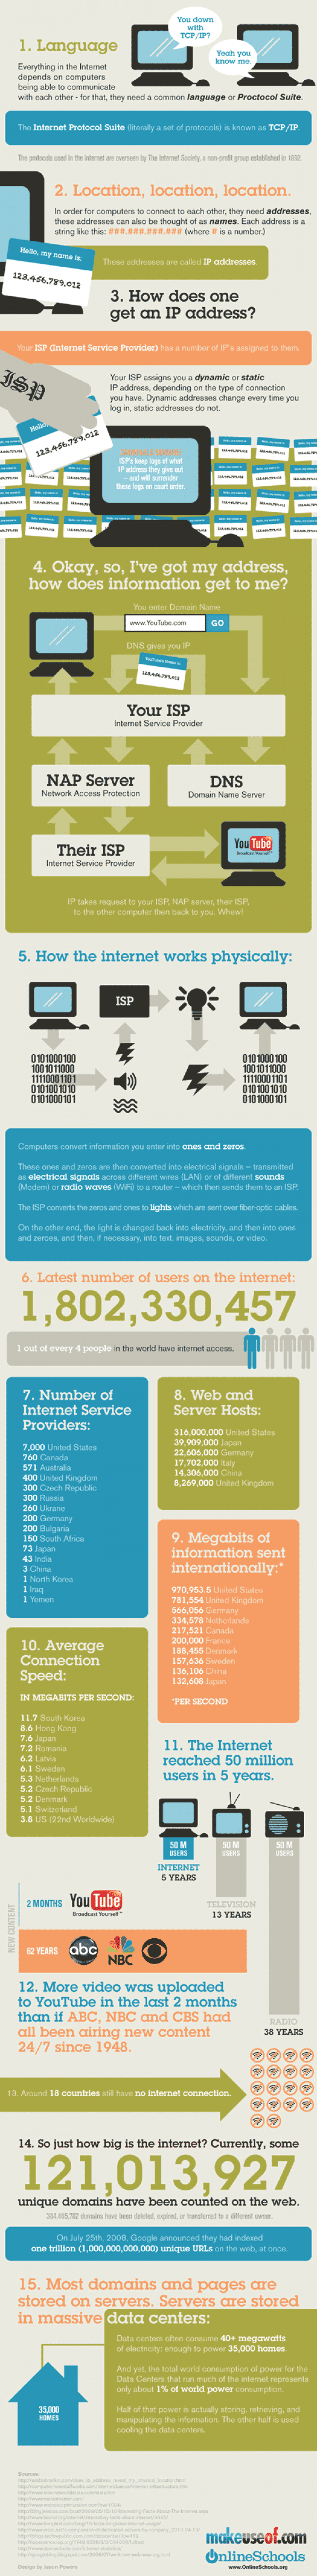 How the Internet Works Infographic